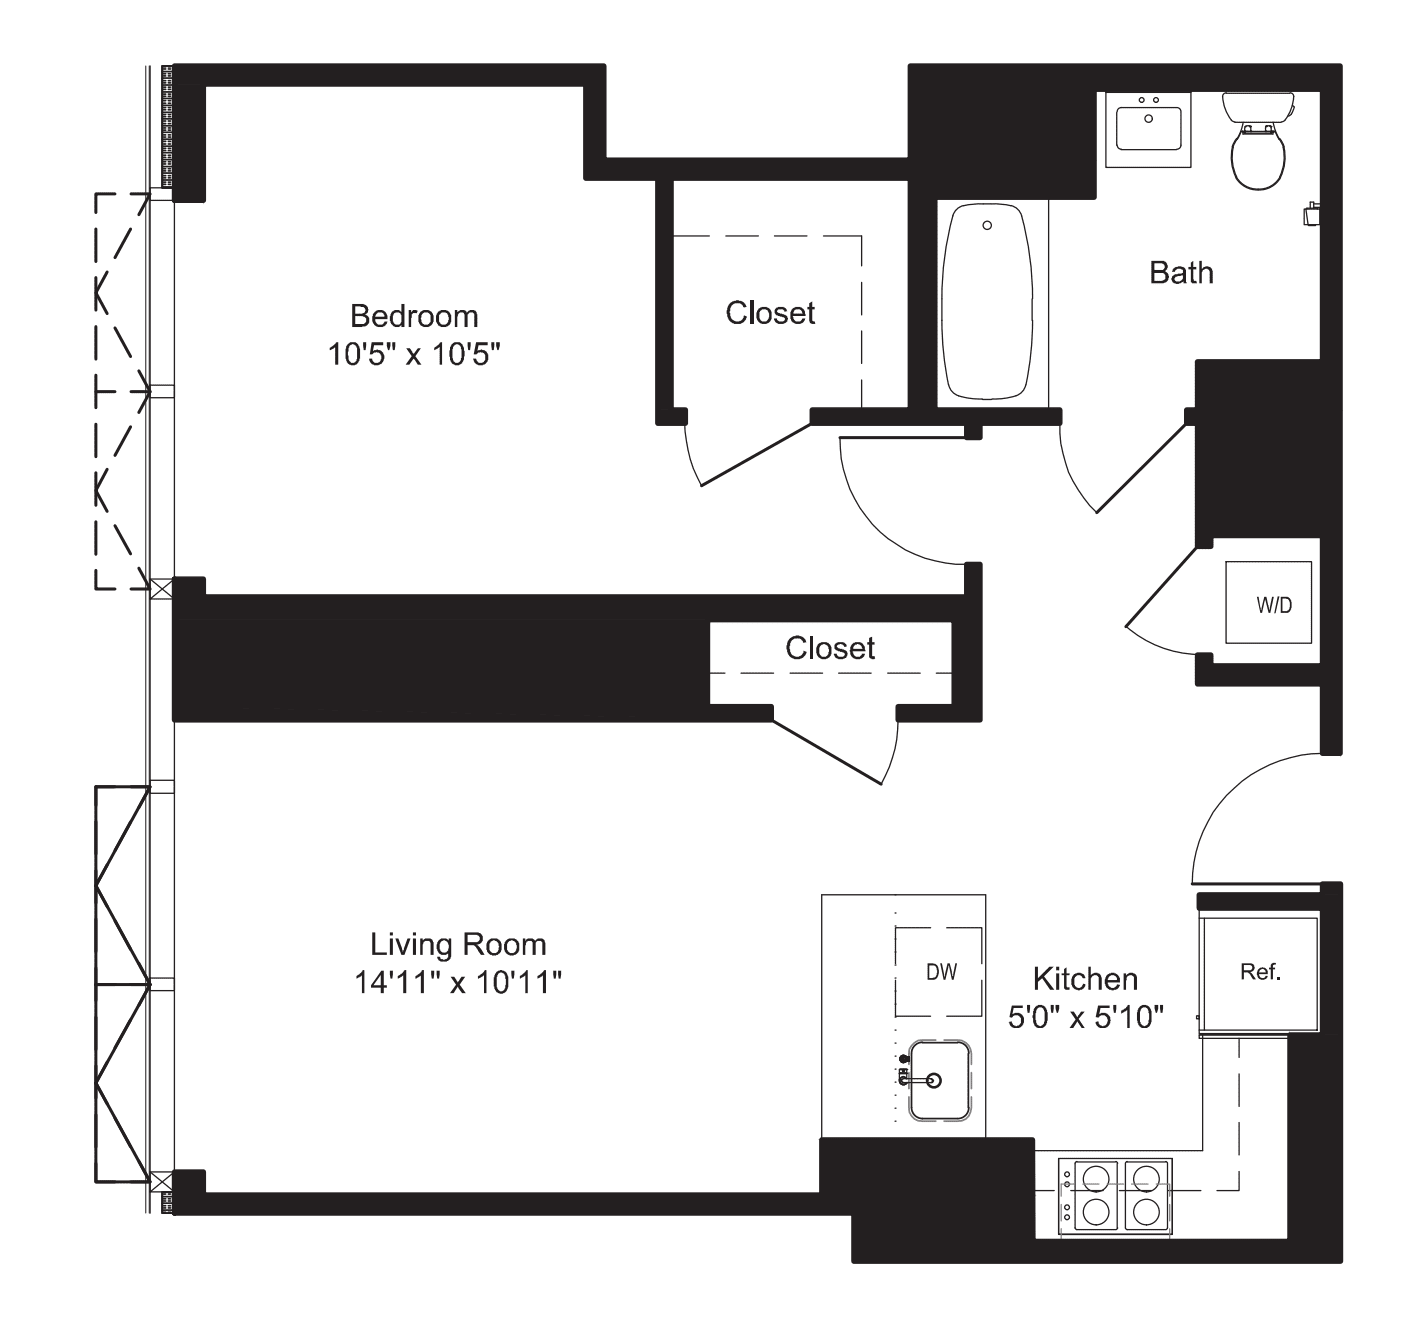 One Bedroom A 20-22